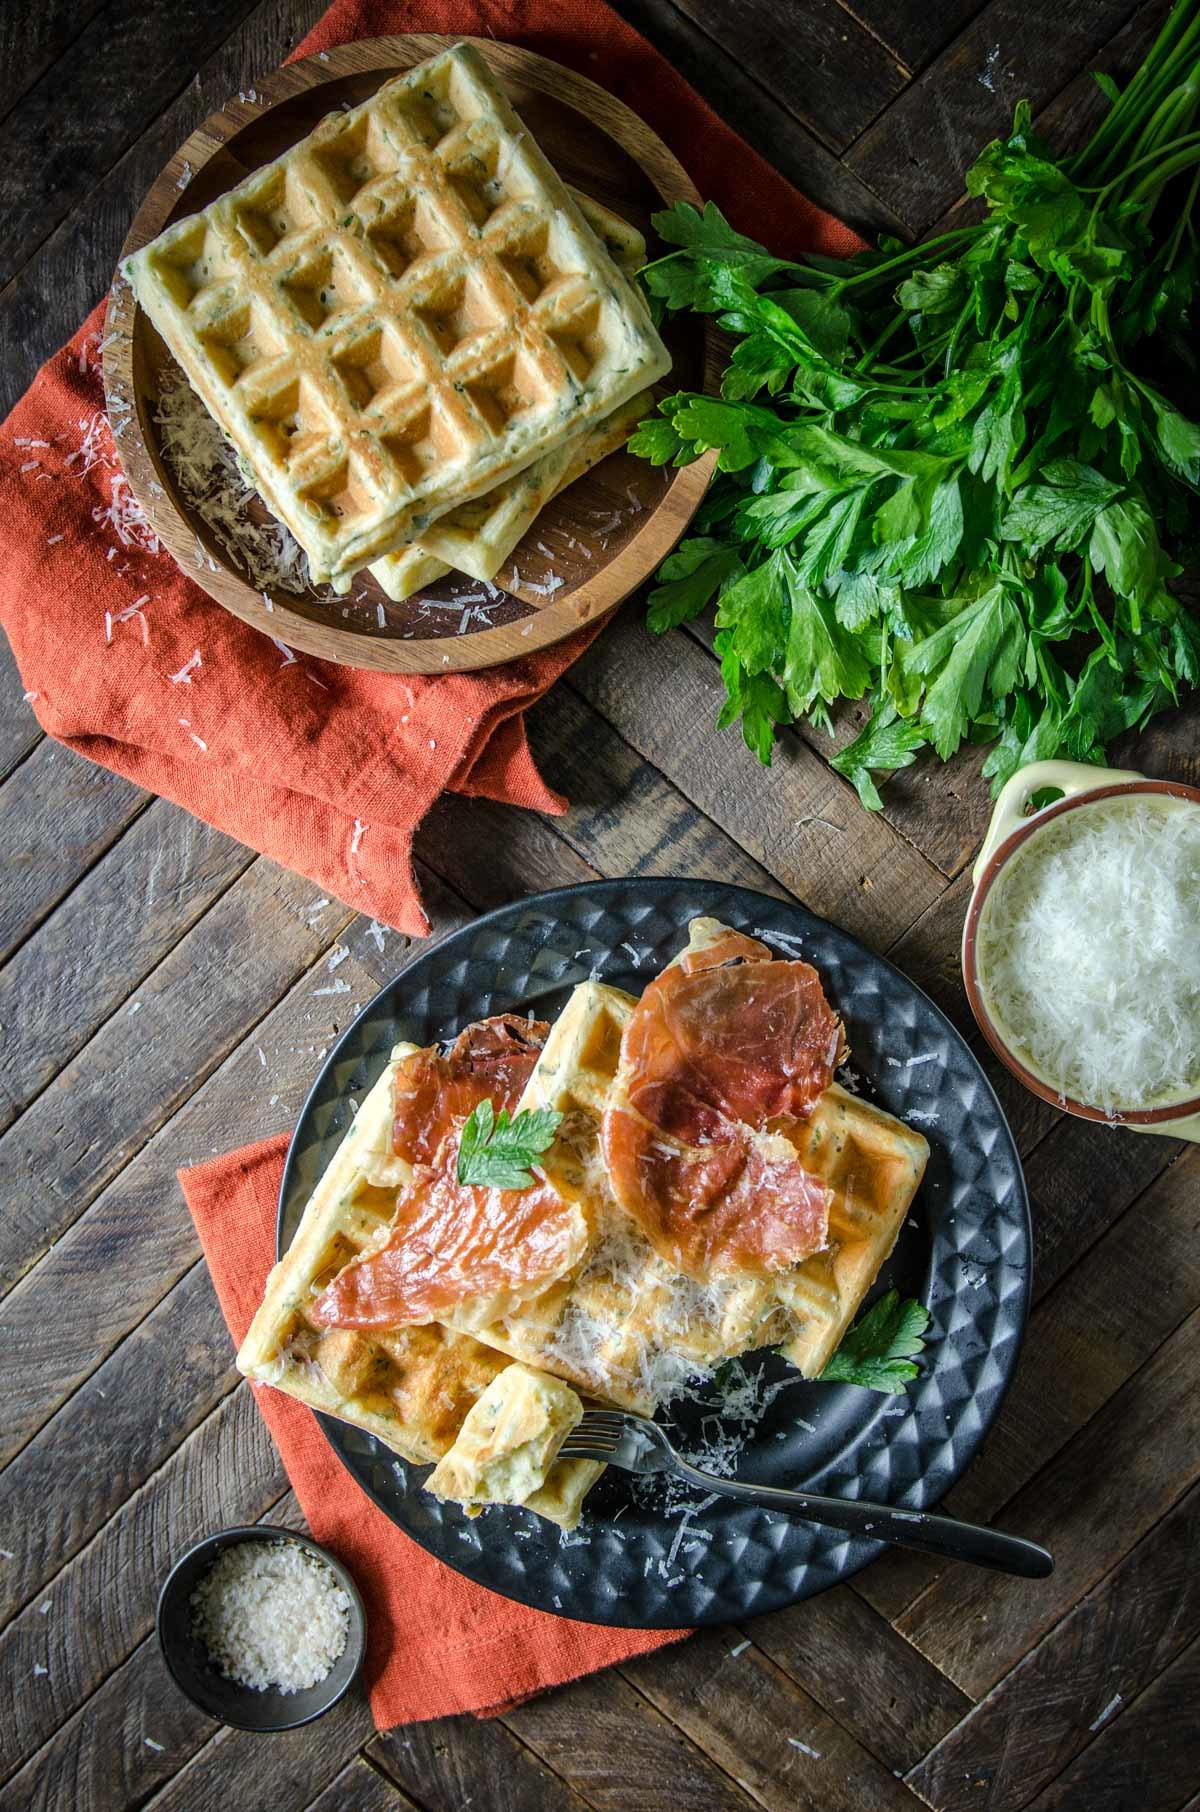 Parmesan and Parsley Savory Waffles | Chew Town Food Blog